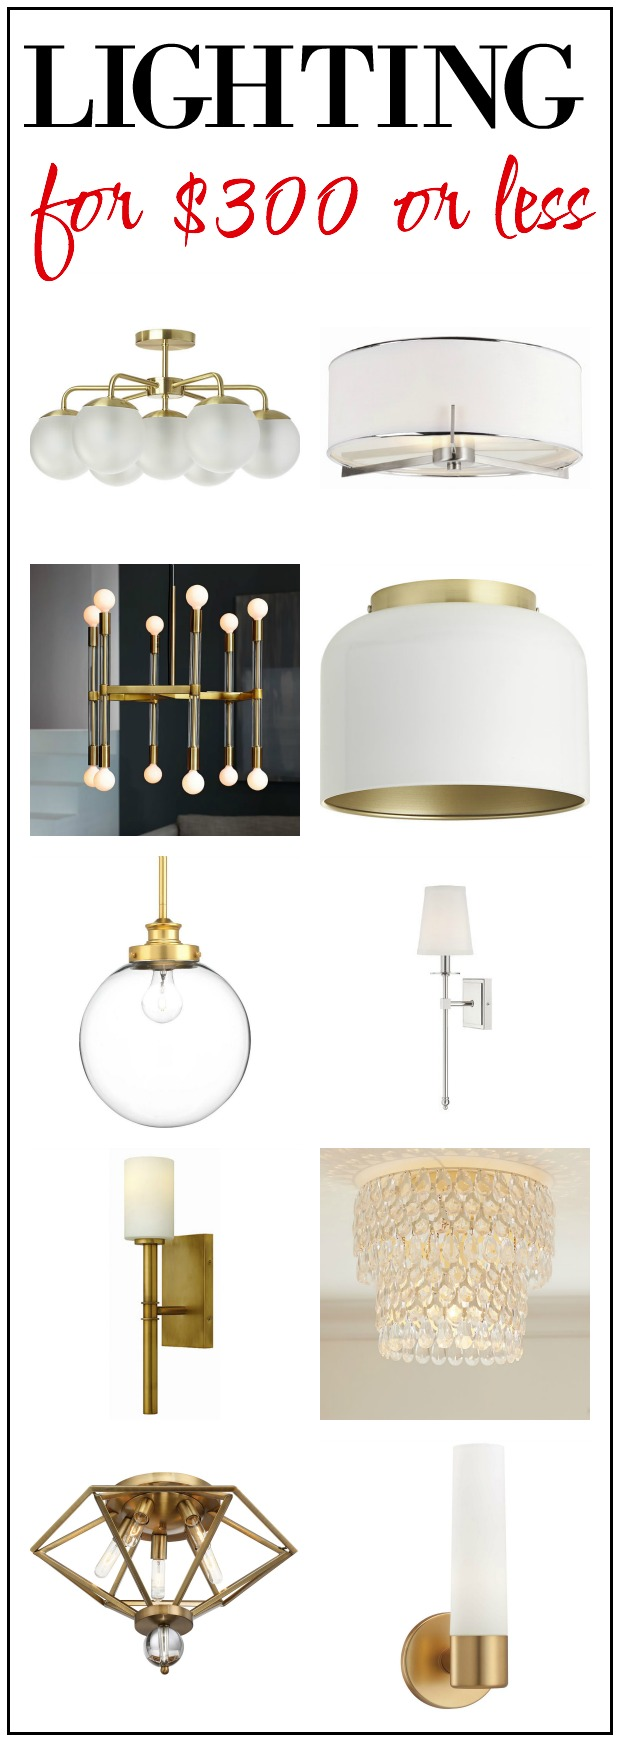 Affordable Lighting Fixtures | Affordable Light Fixtures | Affordable Sconces | Affordable Chandeliers | Affordable Flush Mount Lighting